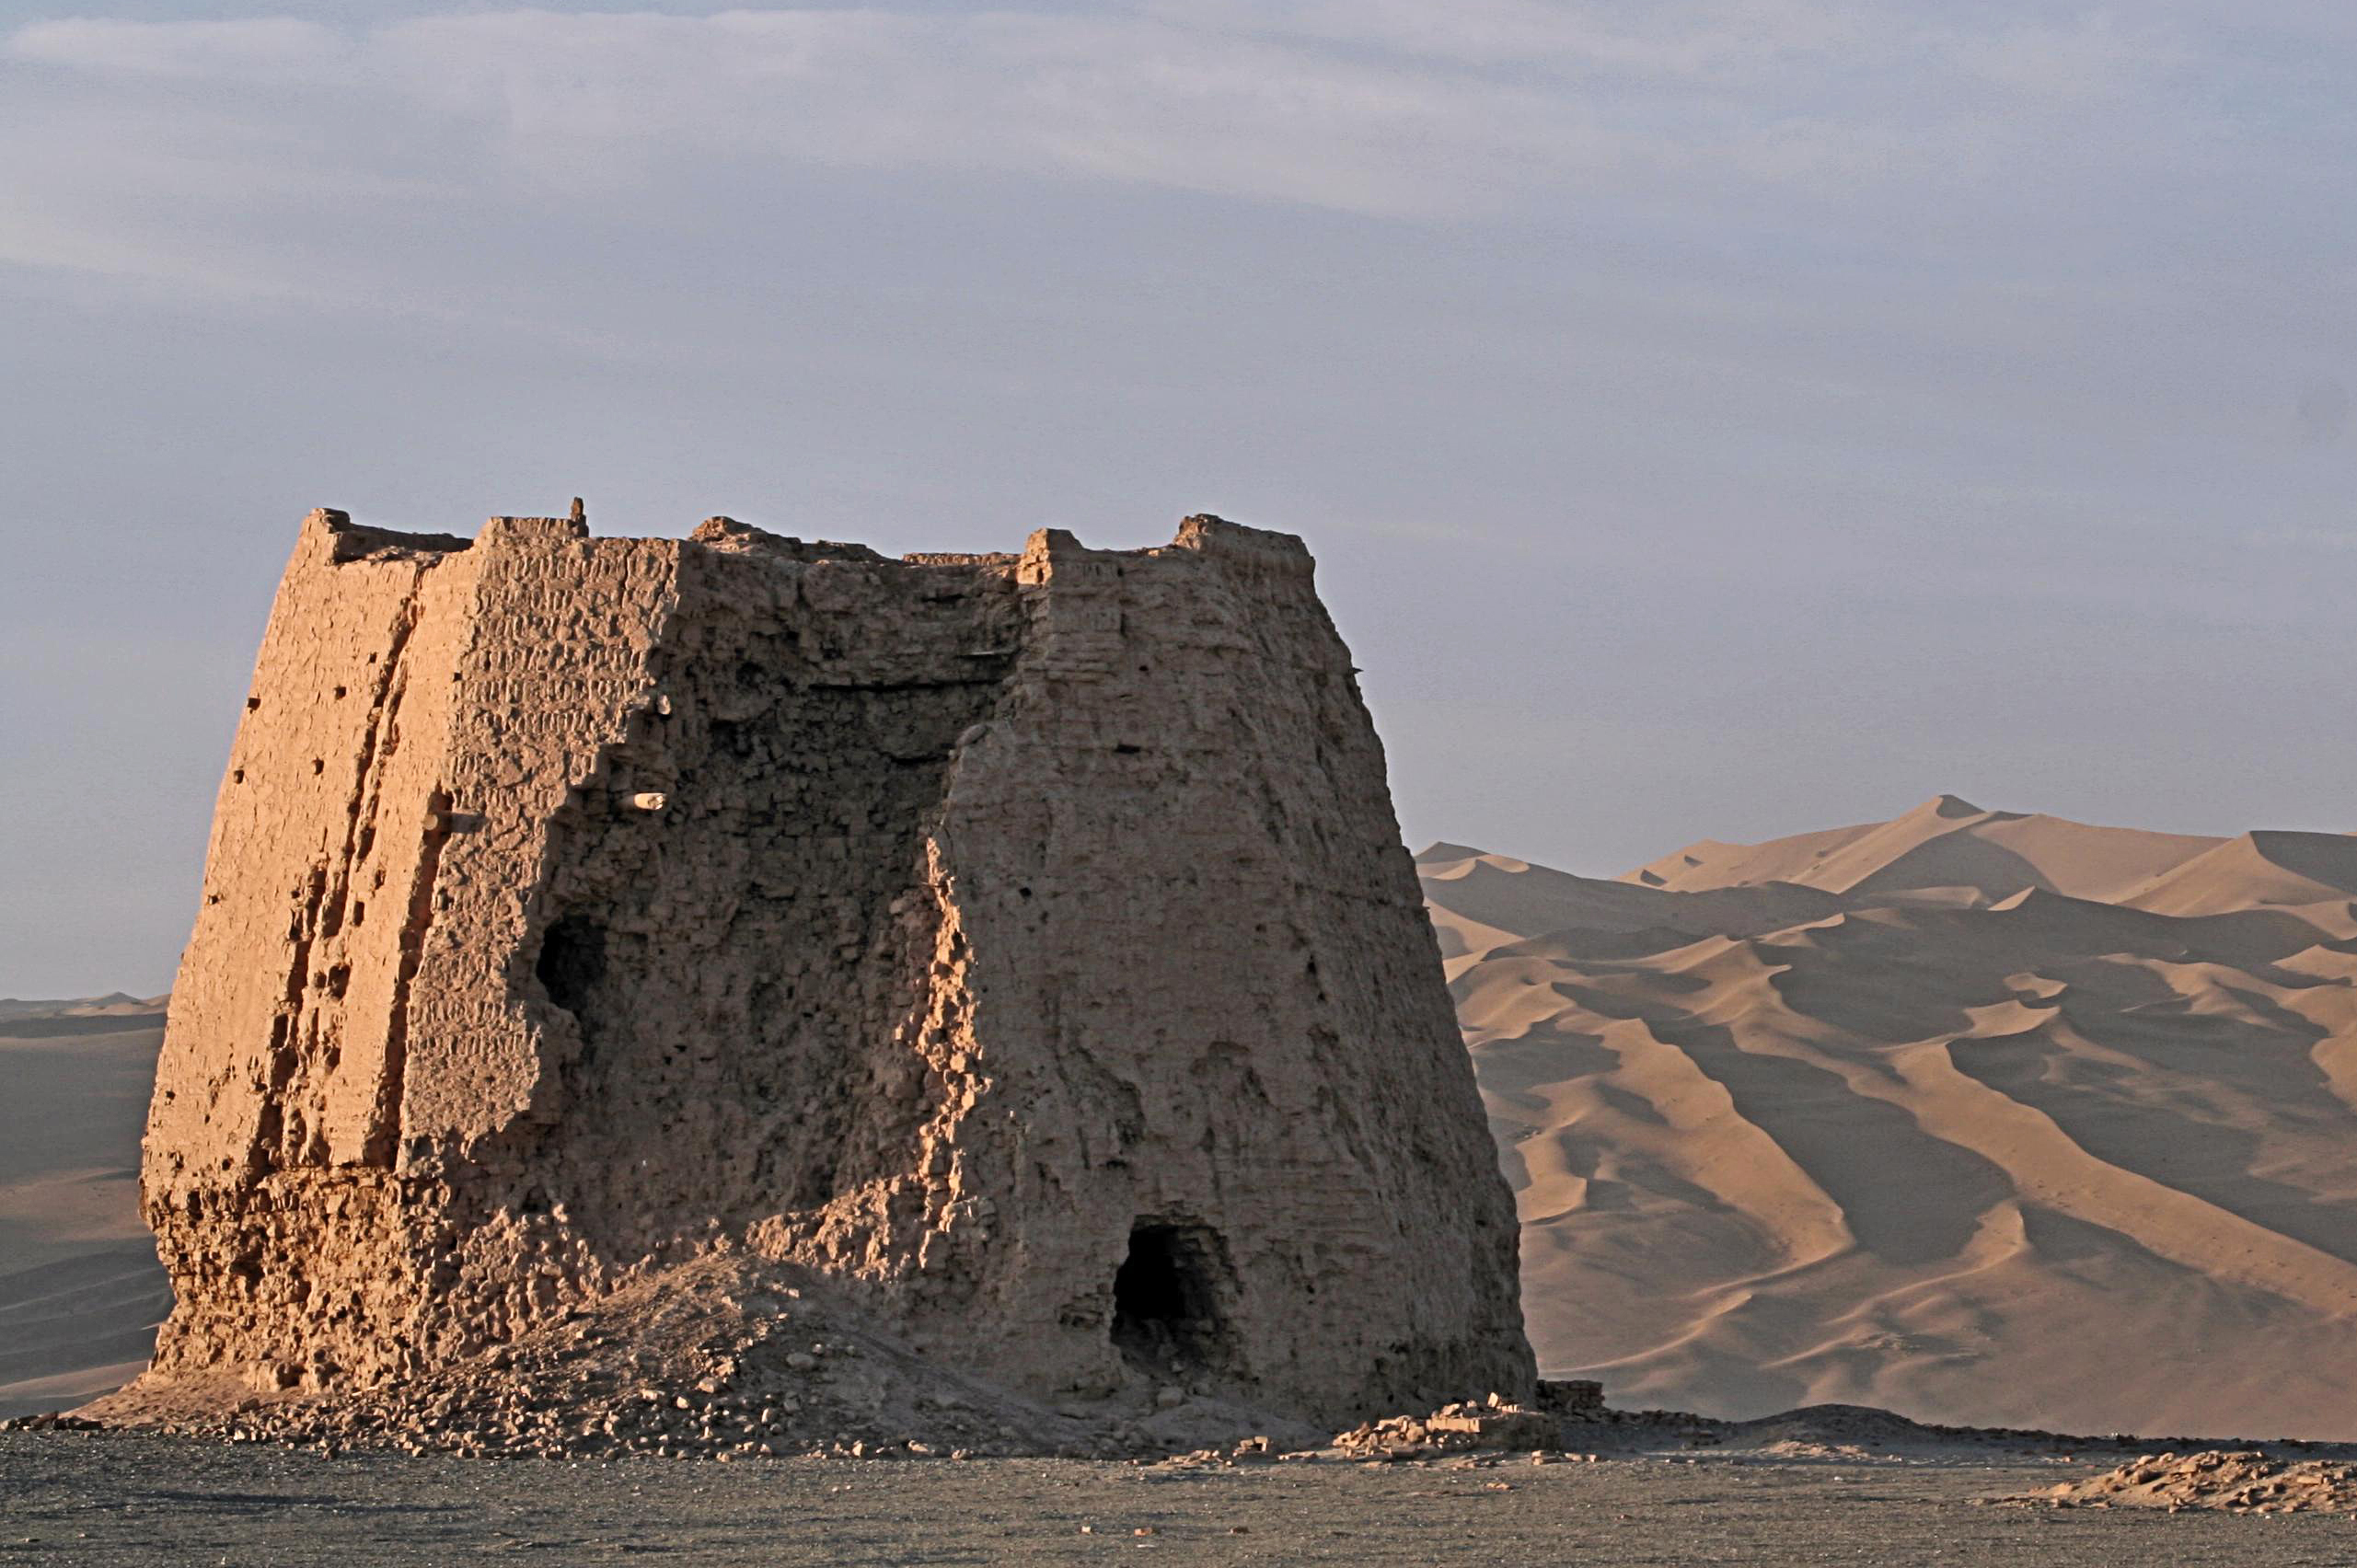 Han dynasty wikipedia the ruins of a han dynasty watchtower made of rammed earth at dunhuang gansu province the eastern edge of the silk road biocorpaavc Choice Image